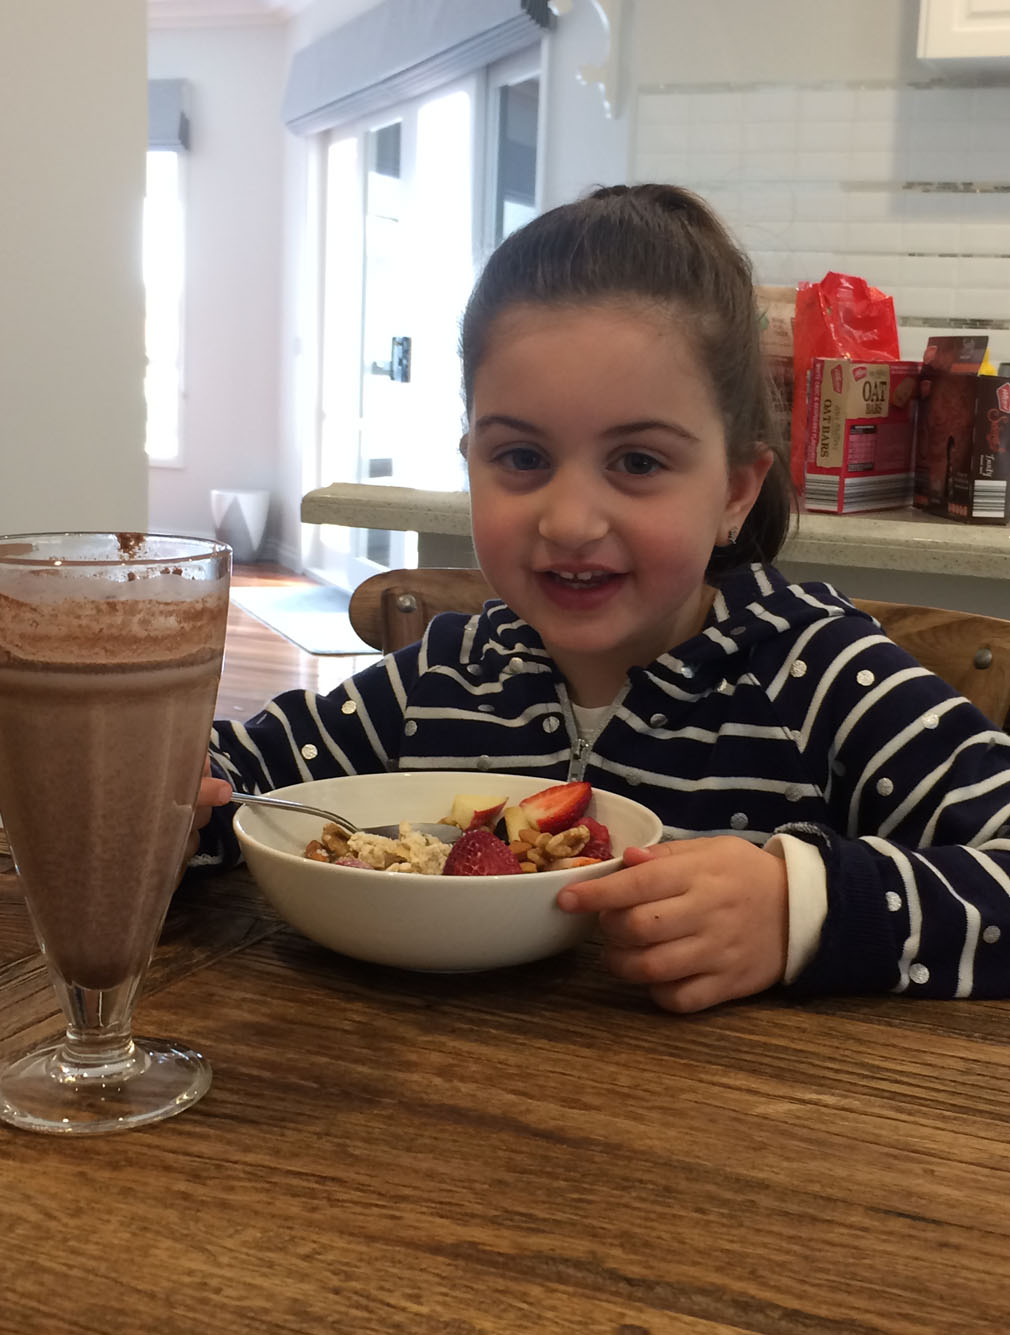 Four-year-old Ava enjoys a meal from the Aldi plan. (9NEWS)